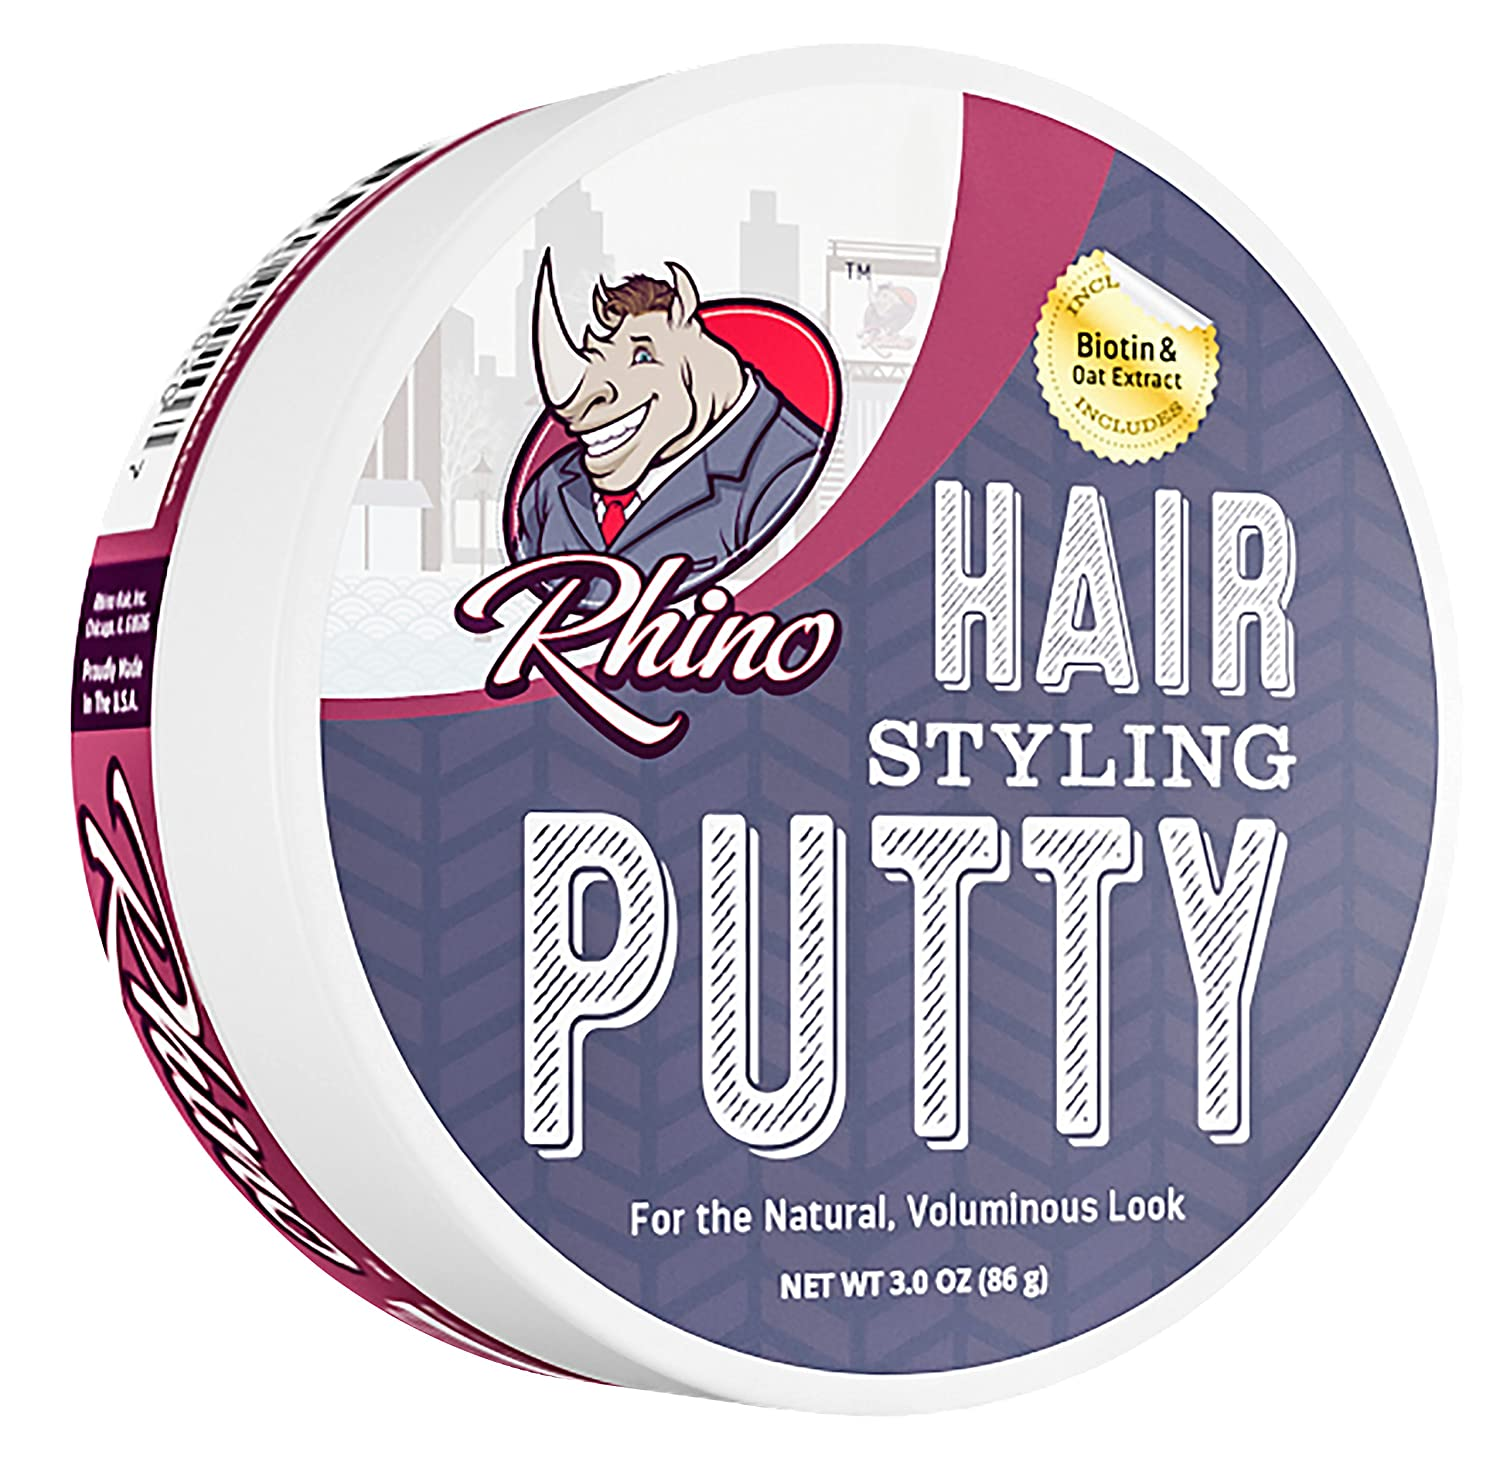 Rhino Premium Hair Styling Putty, 3 Ounces (Includes Biotin and Oat Extract) Rhino Hair